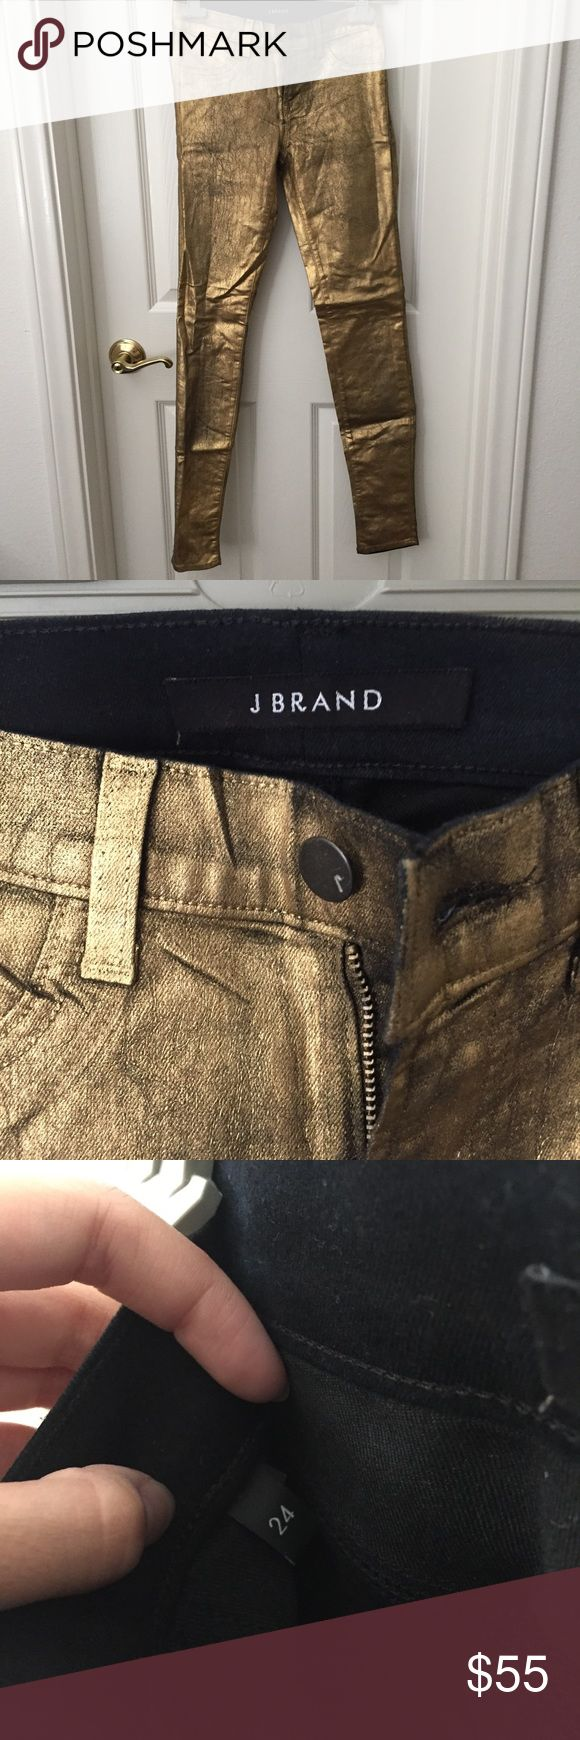 NWOT J Brand Gold Jeans These are NWOT J Brand Gold Foil jeans. They are very skinny. They are gold foil and have never been worn. J Brand Jeans Skinny